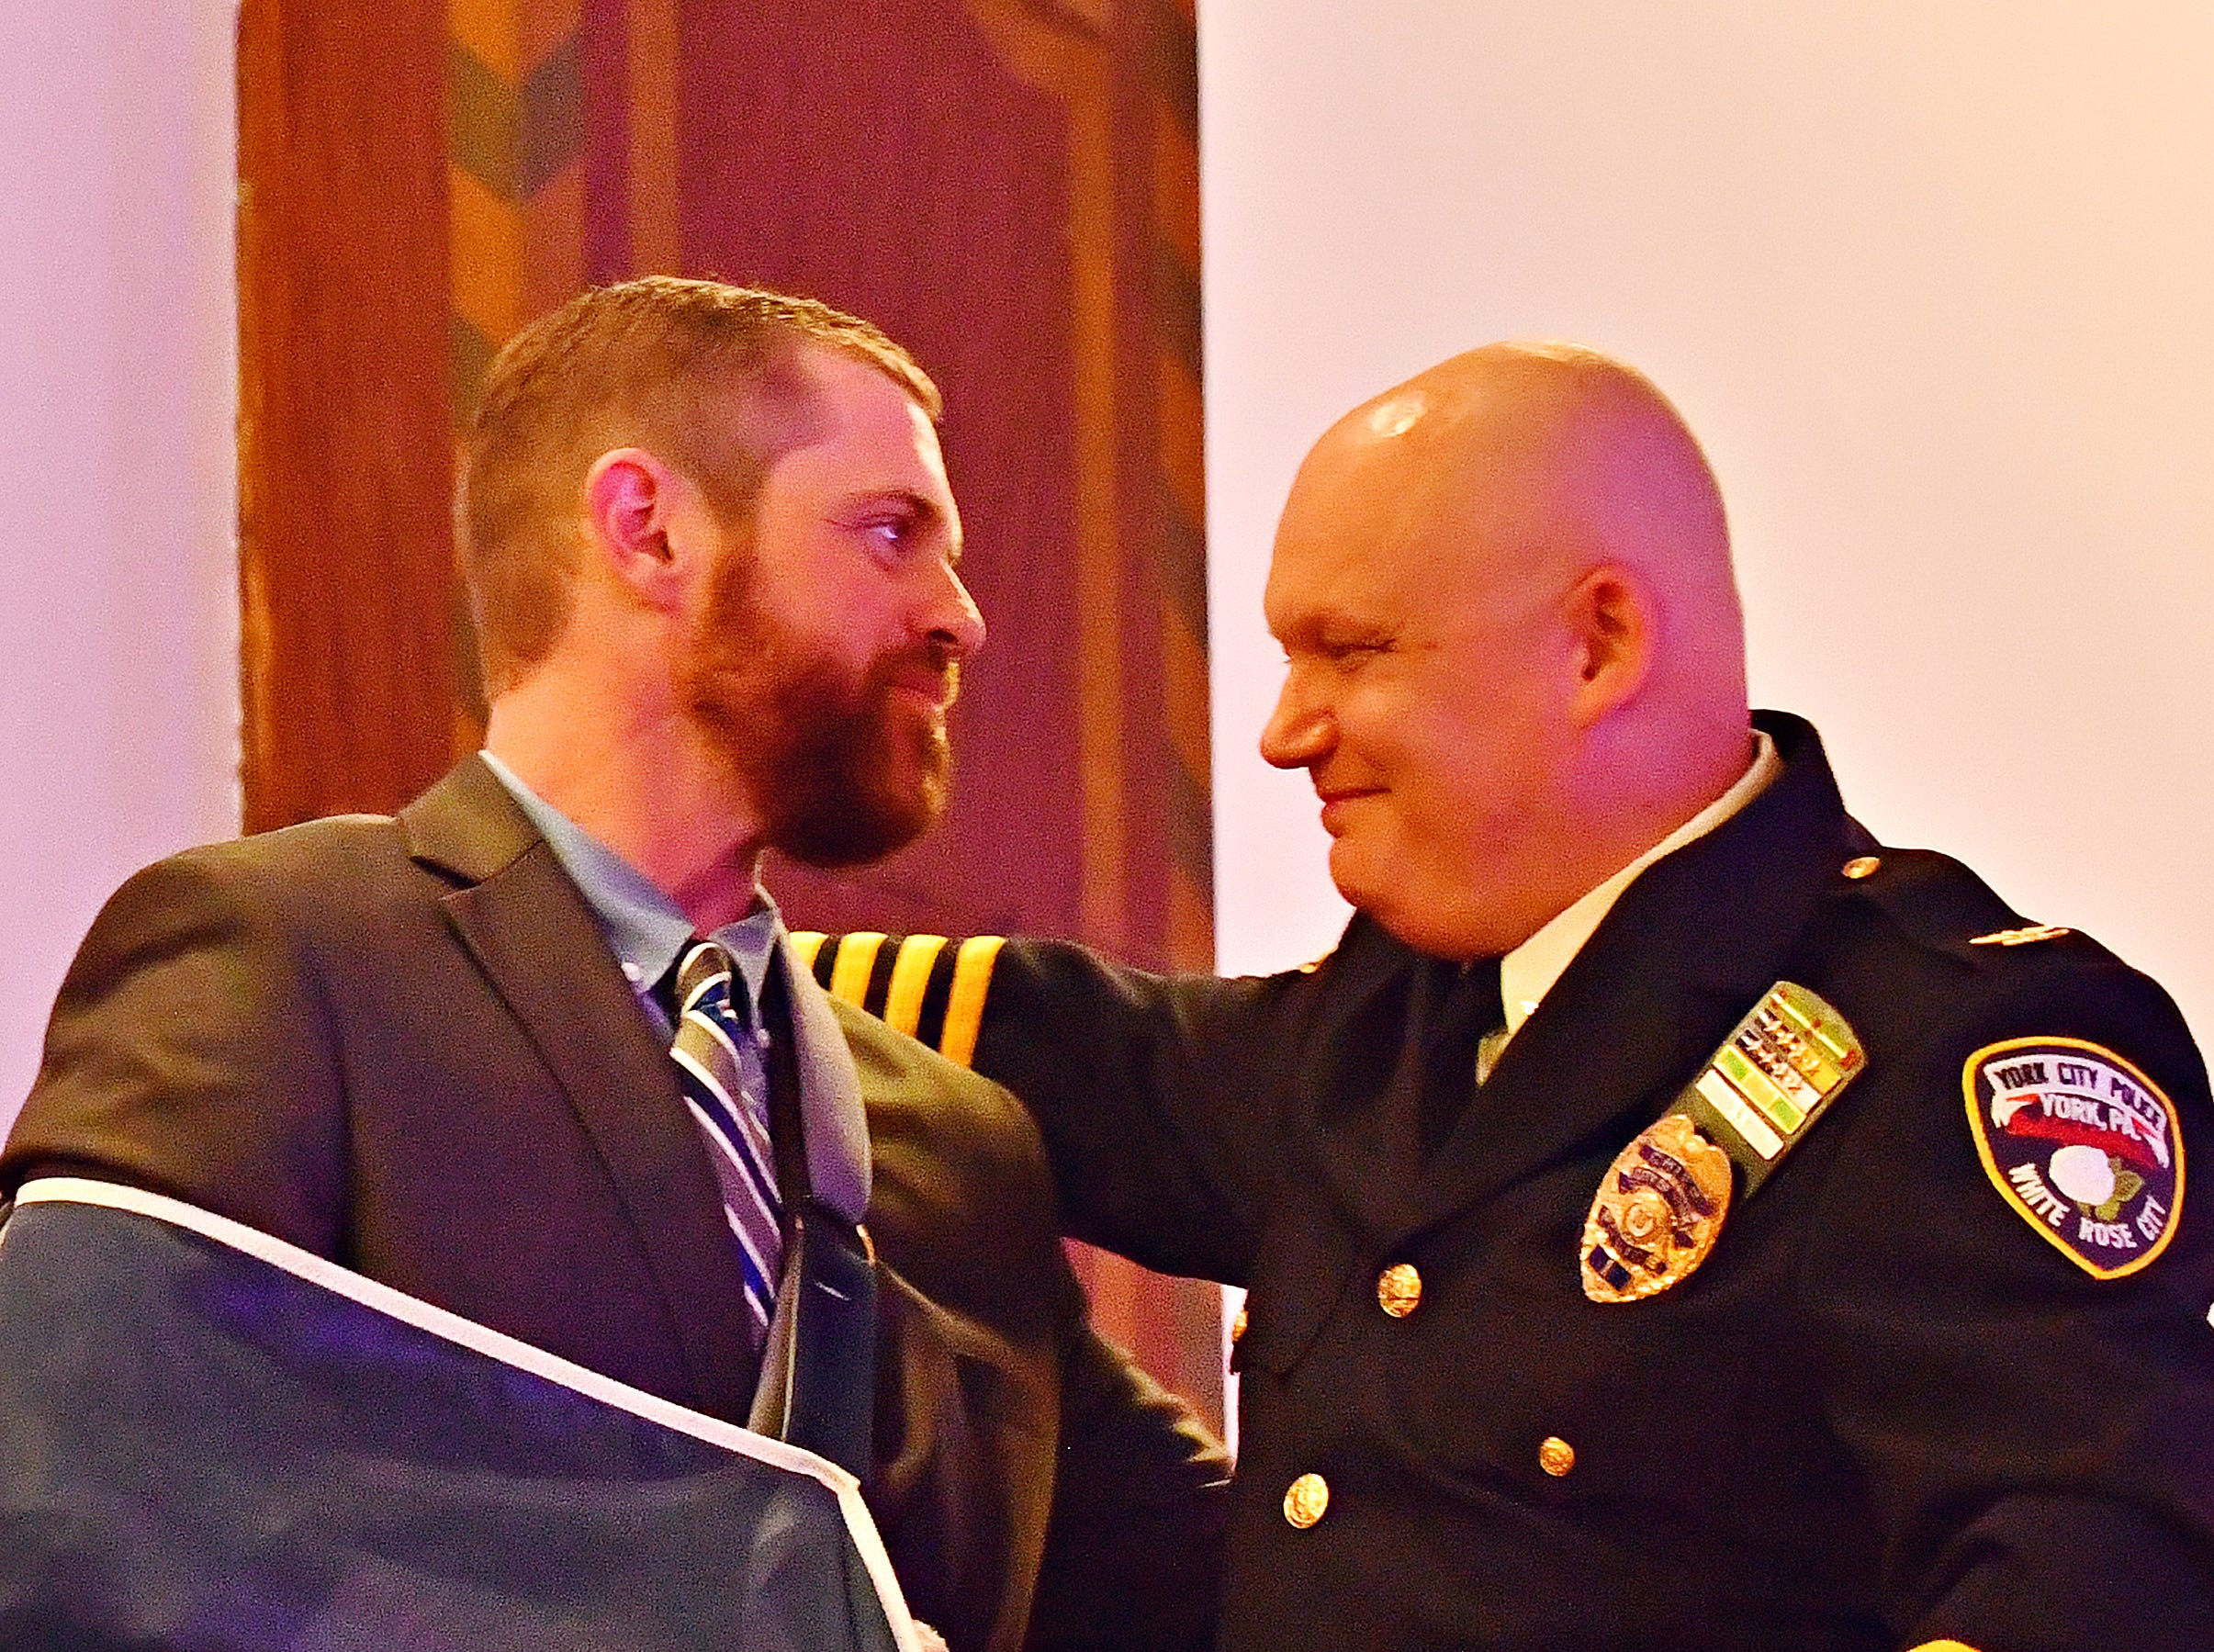 """Police Officer Kyle Pitts, left, is presented with the 2018 """"Police Officer of the Year"""" award by York City Police Chief Troy Bankert during the York City Police Departmental Awards Ceremony at Valencia Ballroom in York City, Thursday, May 9, 2019. Dawn J. Sagert photo"""